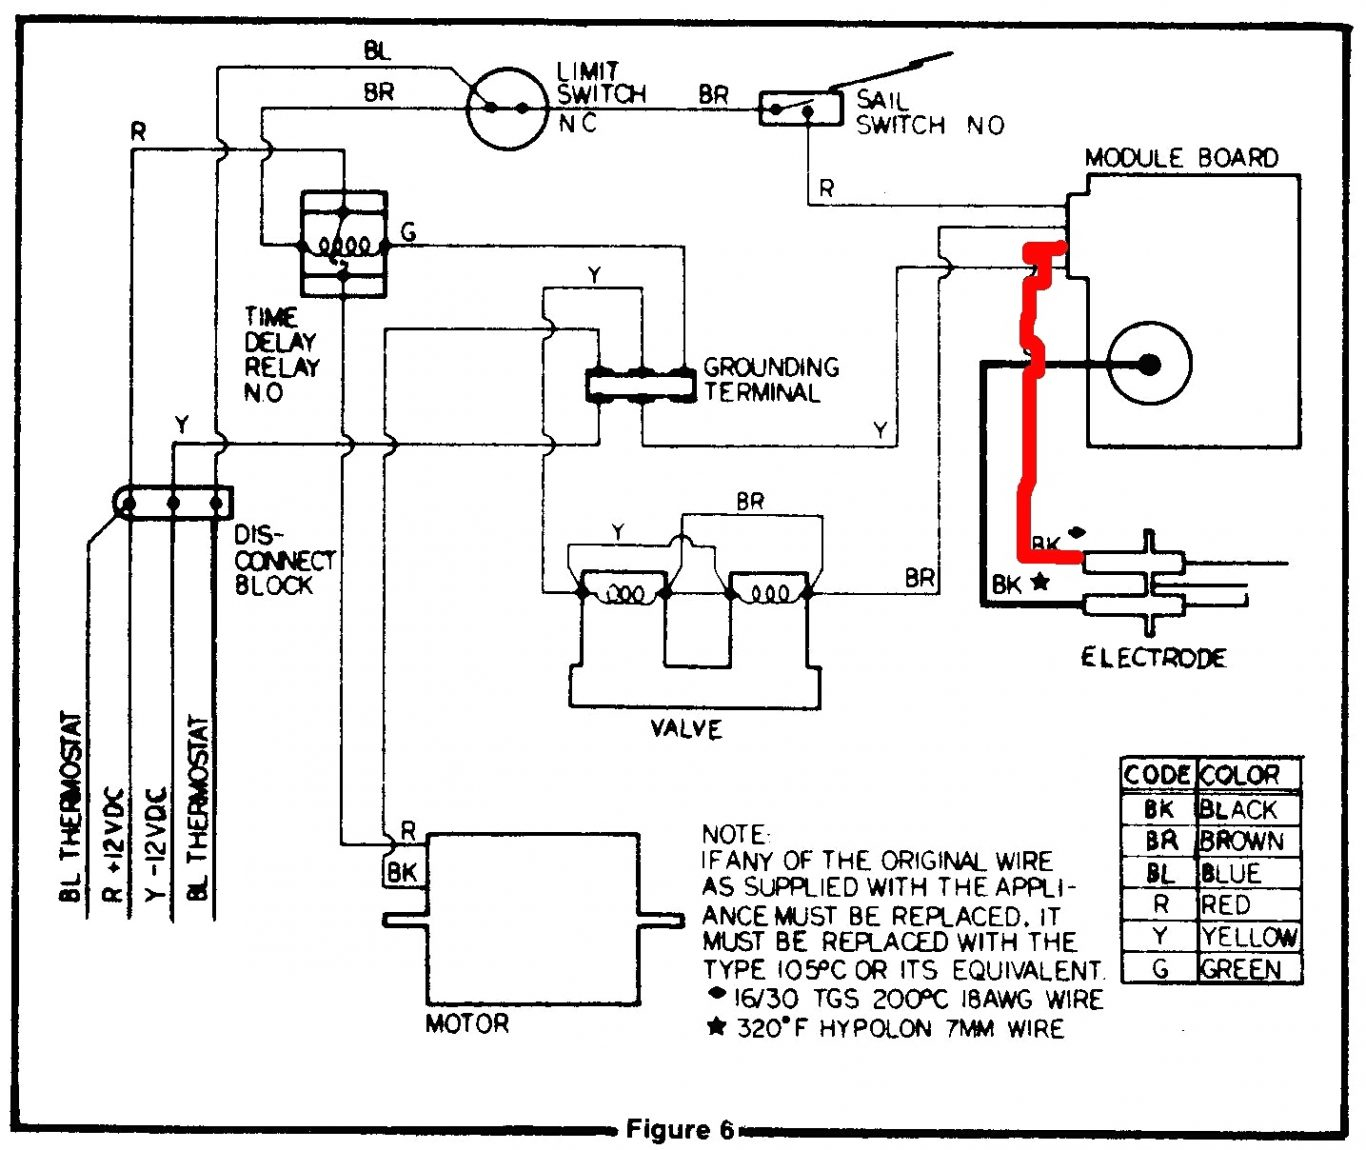 coleman evcon wiring diagram thermostat massey ferguson 135 parts download inspirational mach thermostating